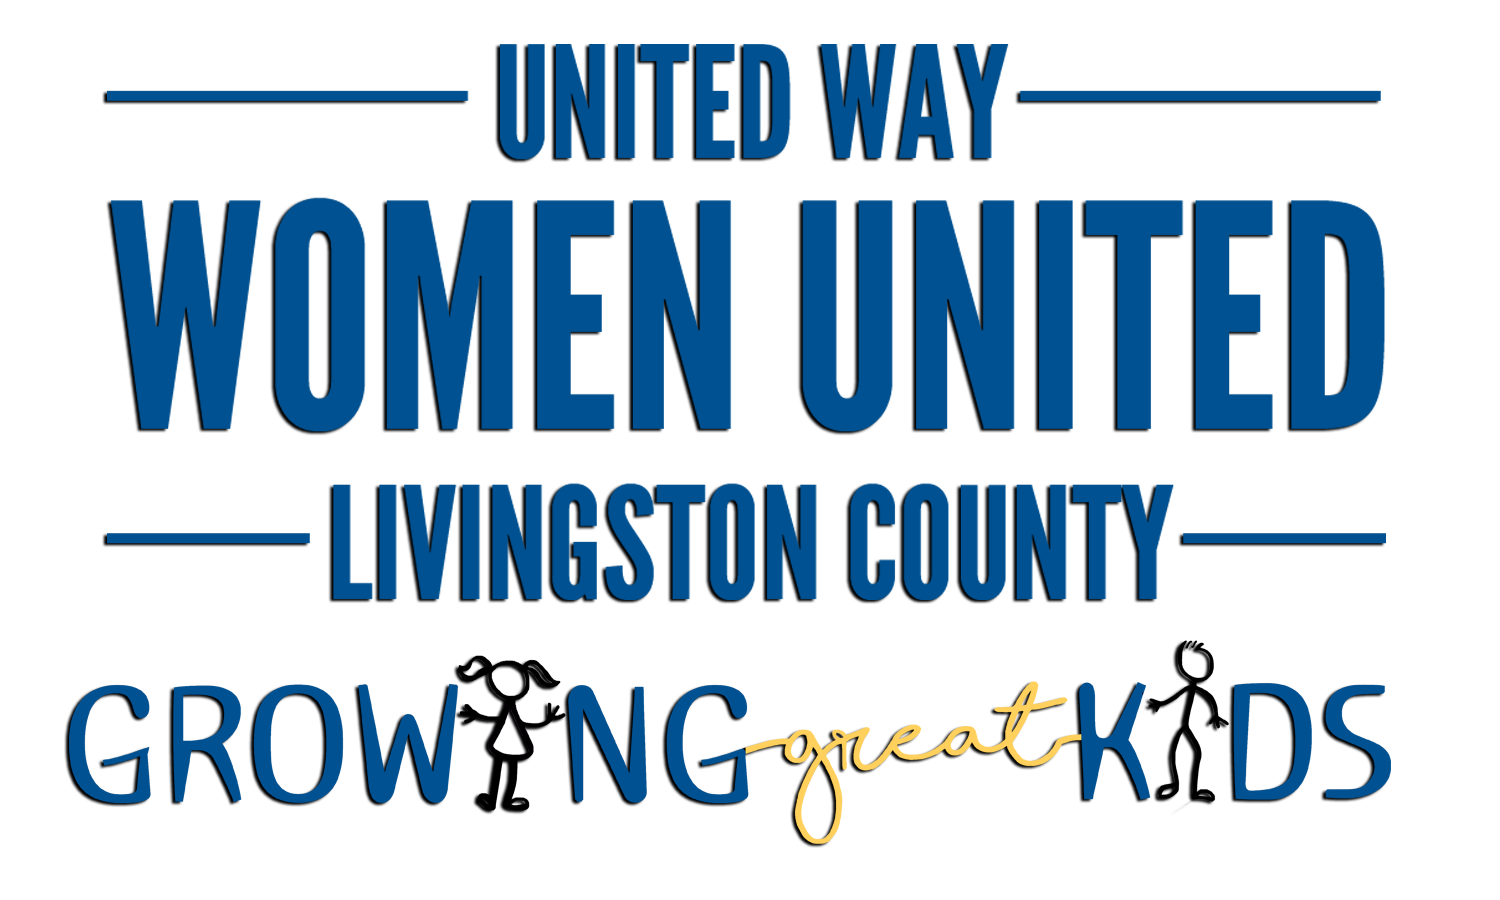 Livingston County United Way.